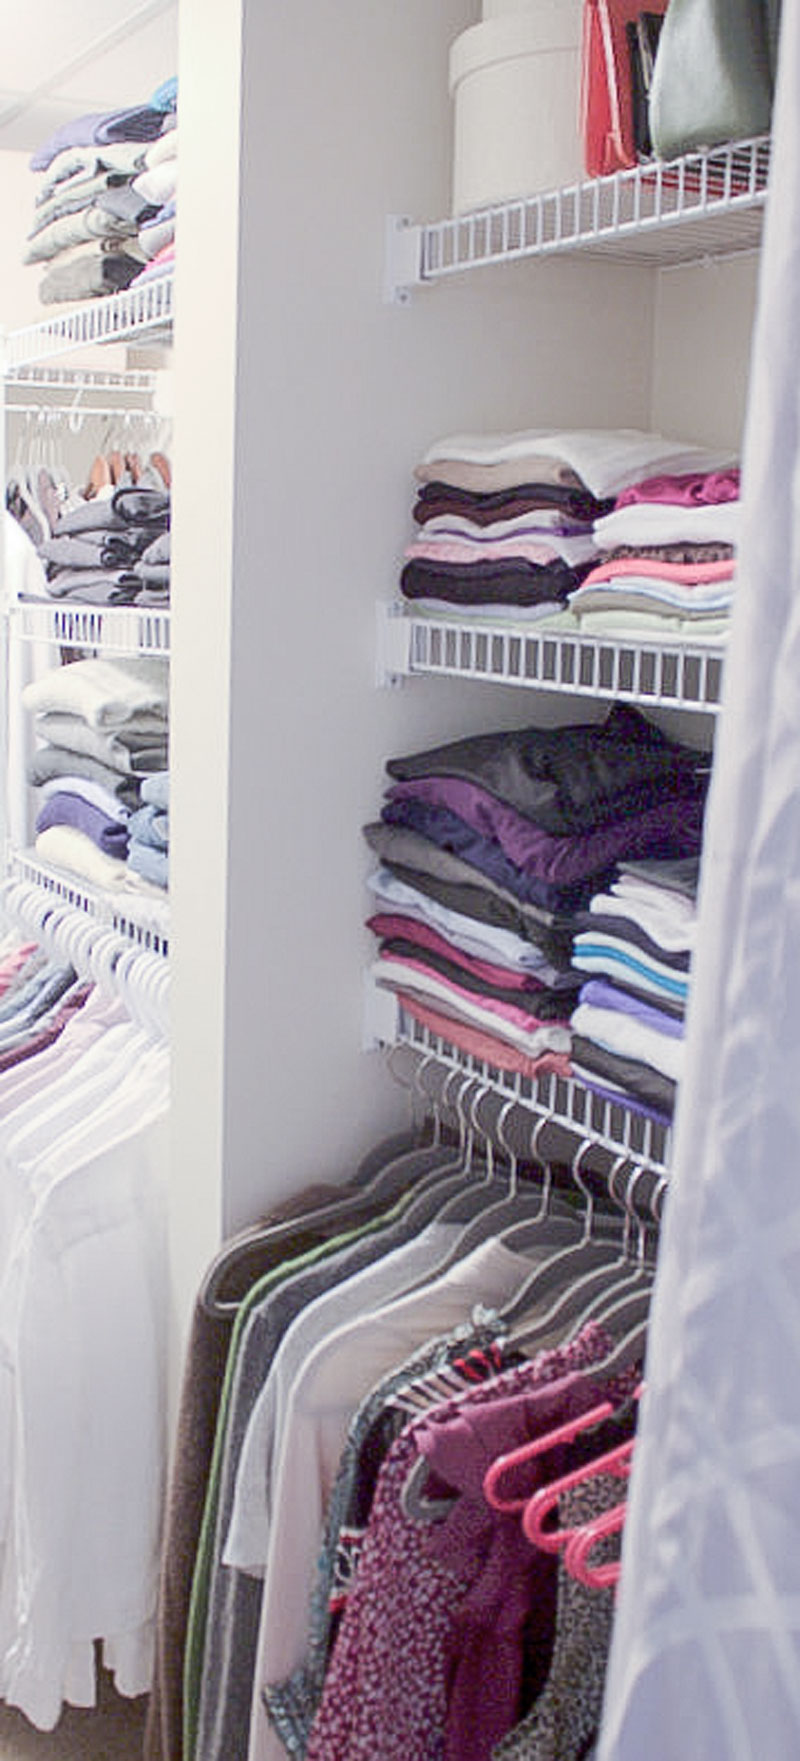 15 steps to decluttering your clothes closet